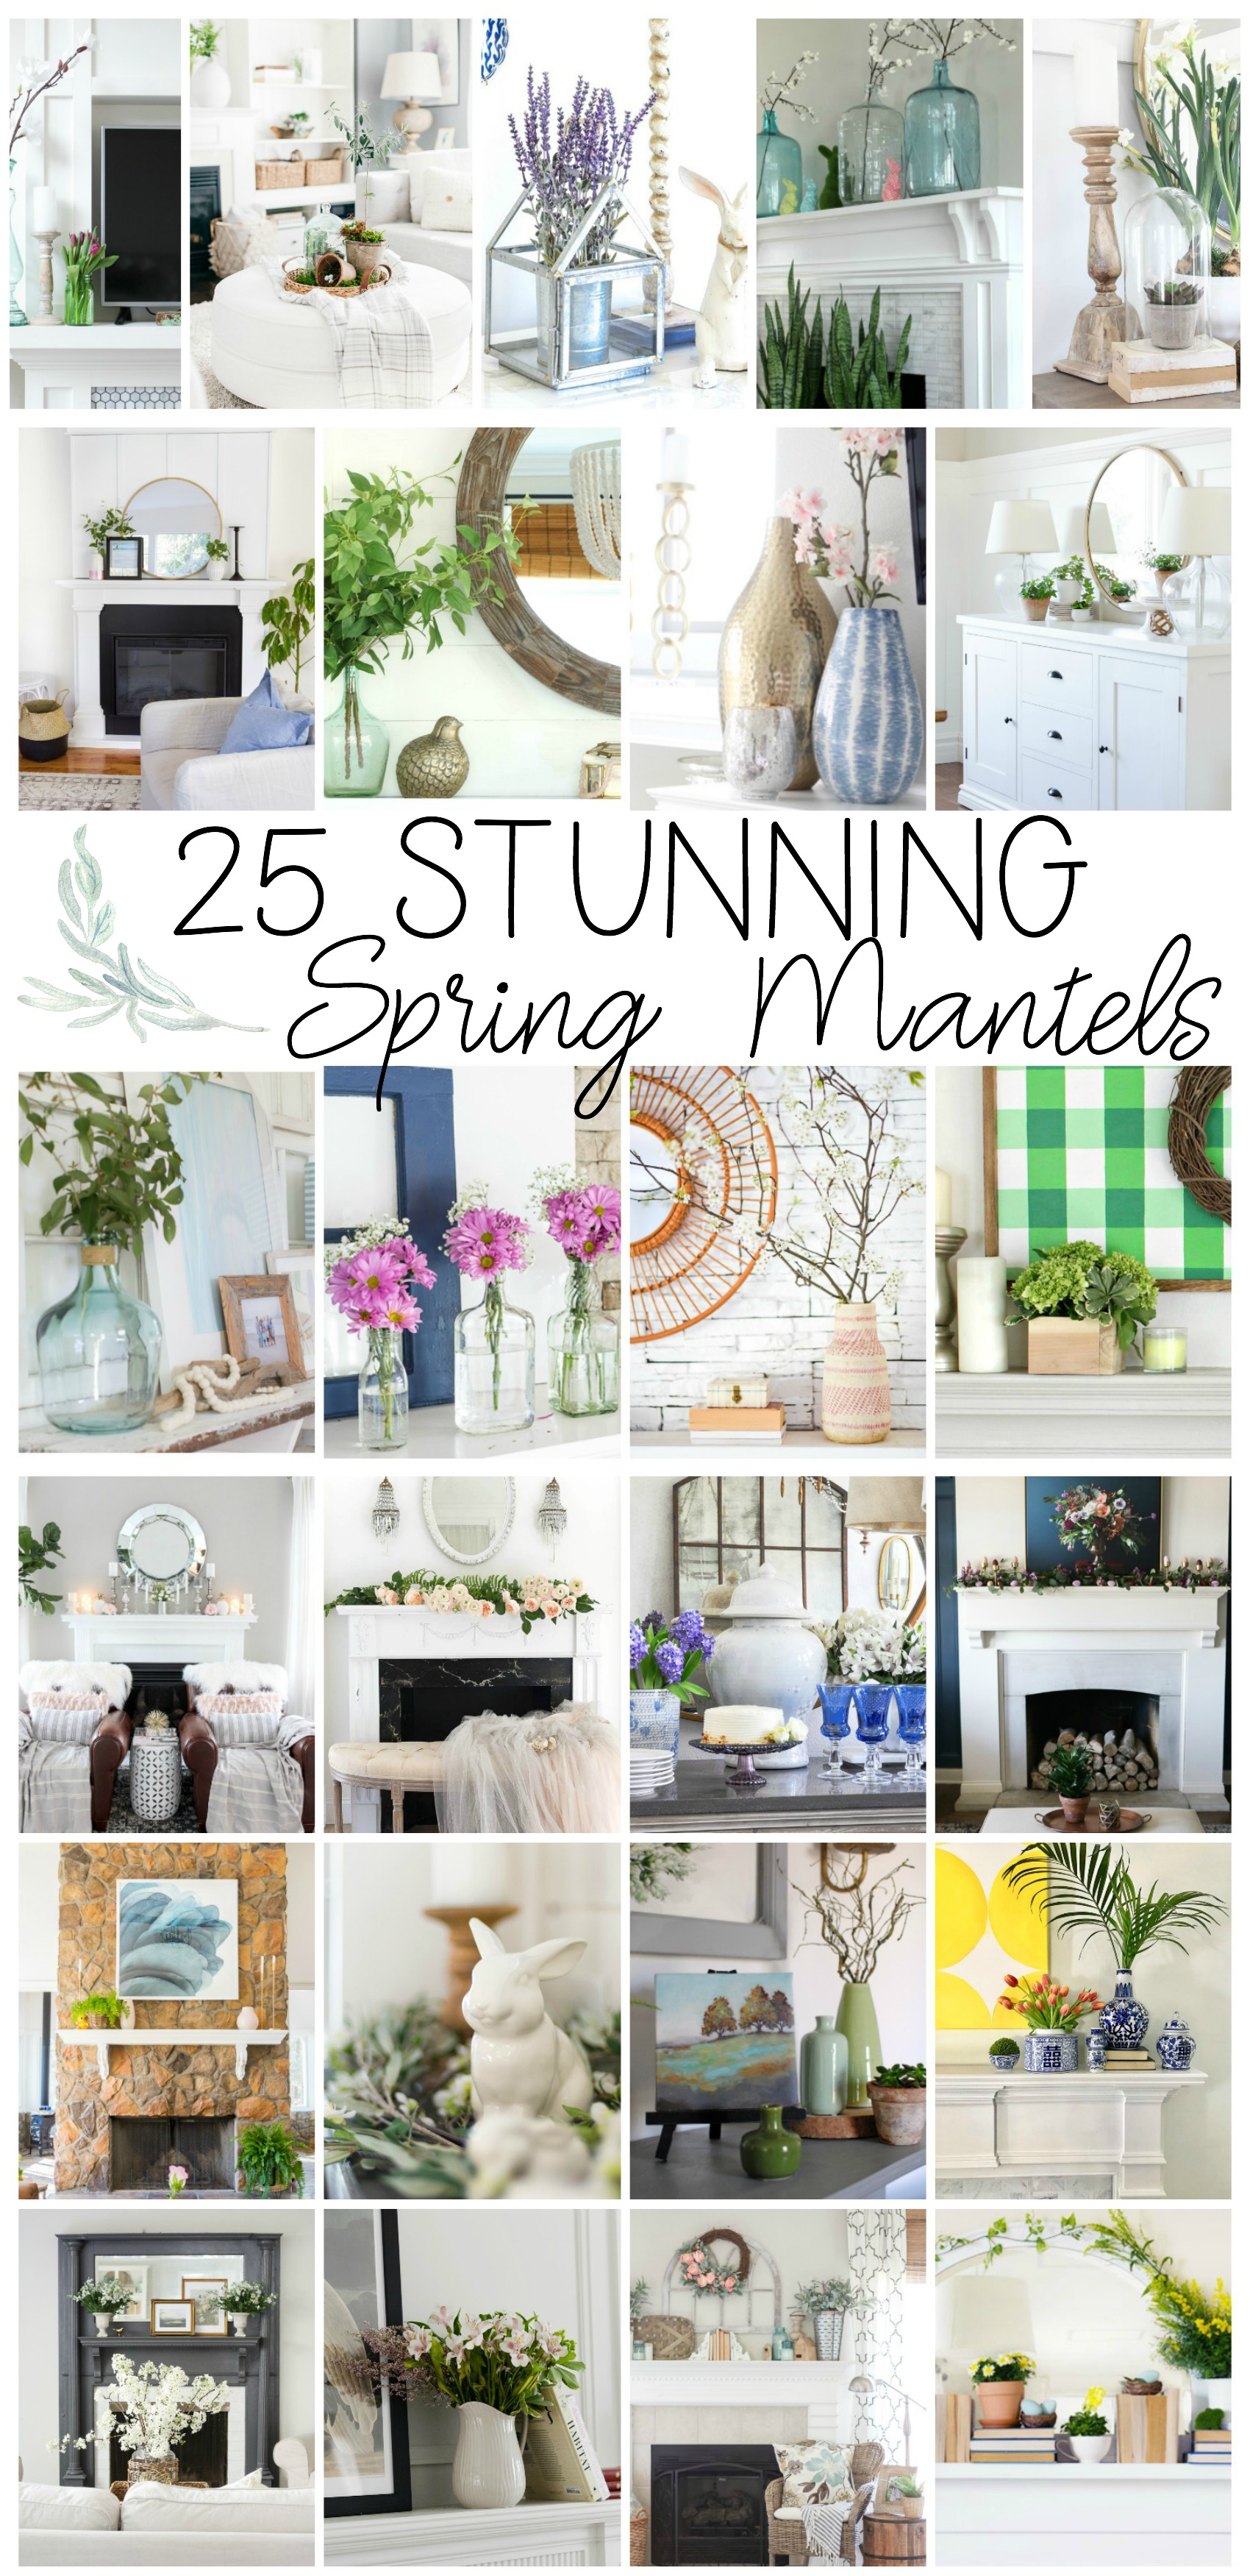 25 Spring Decorating Ideas kellyelko.com #homedecor #springdecor #spring